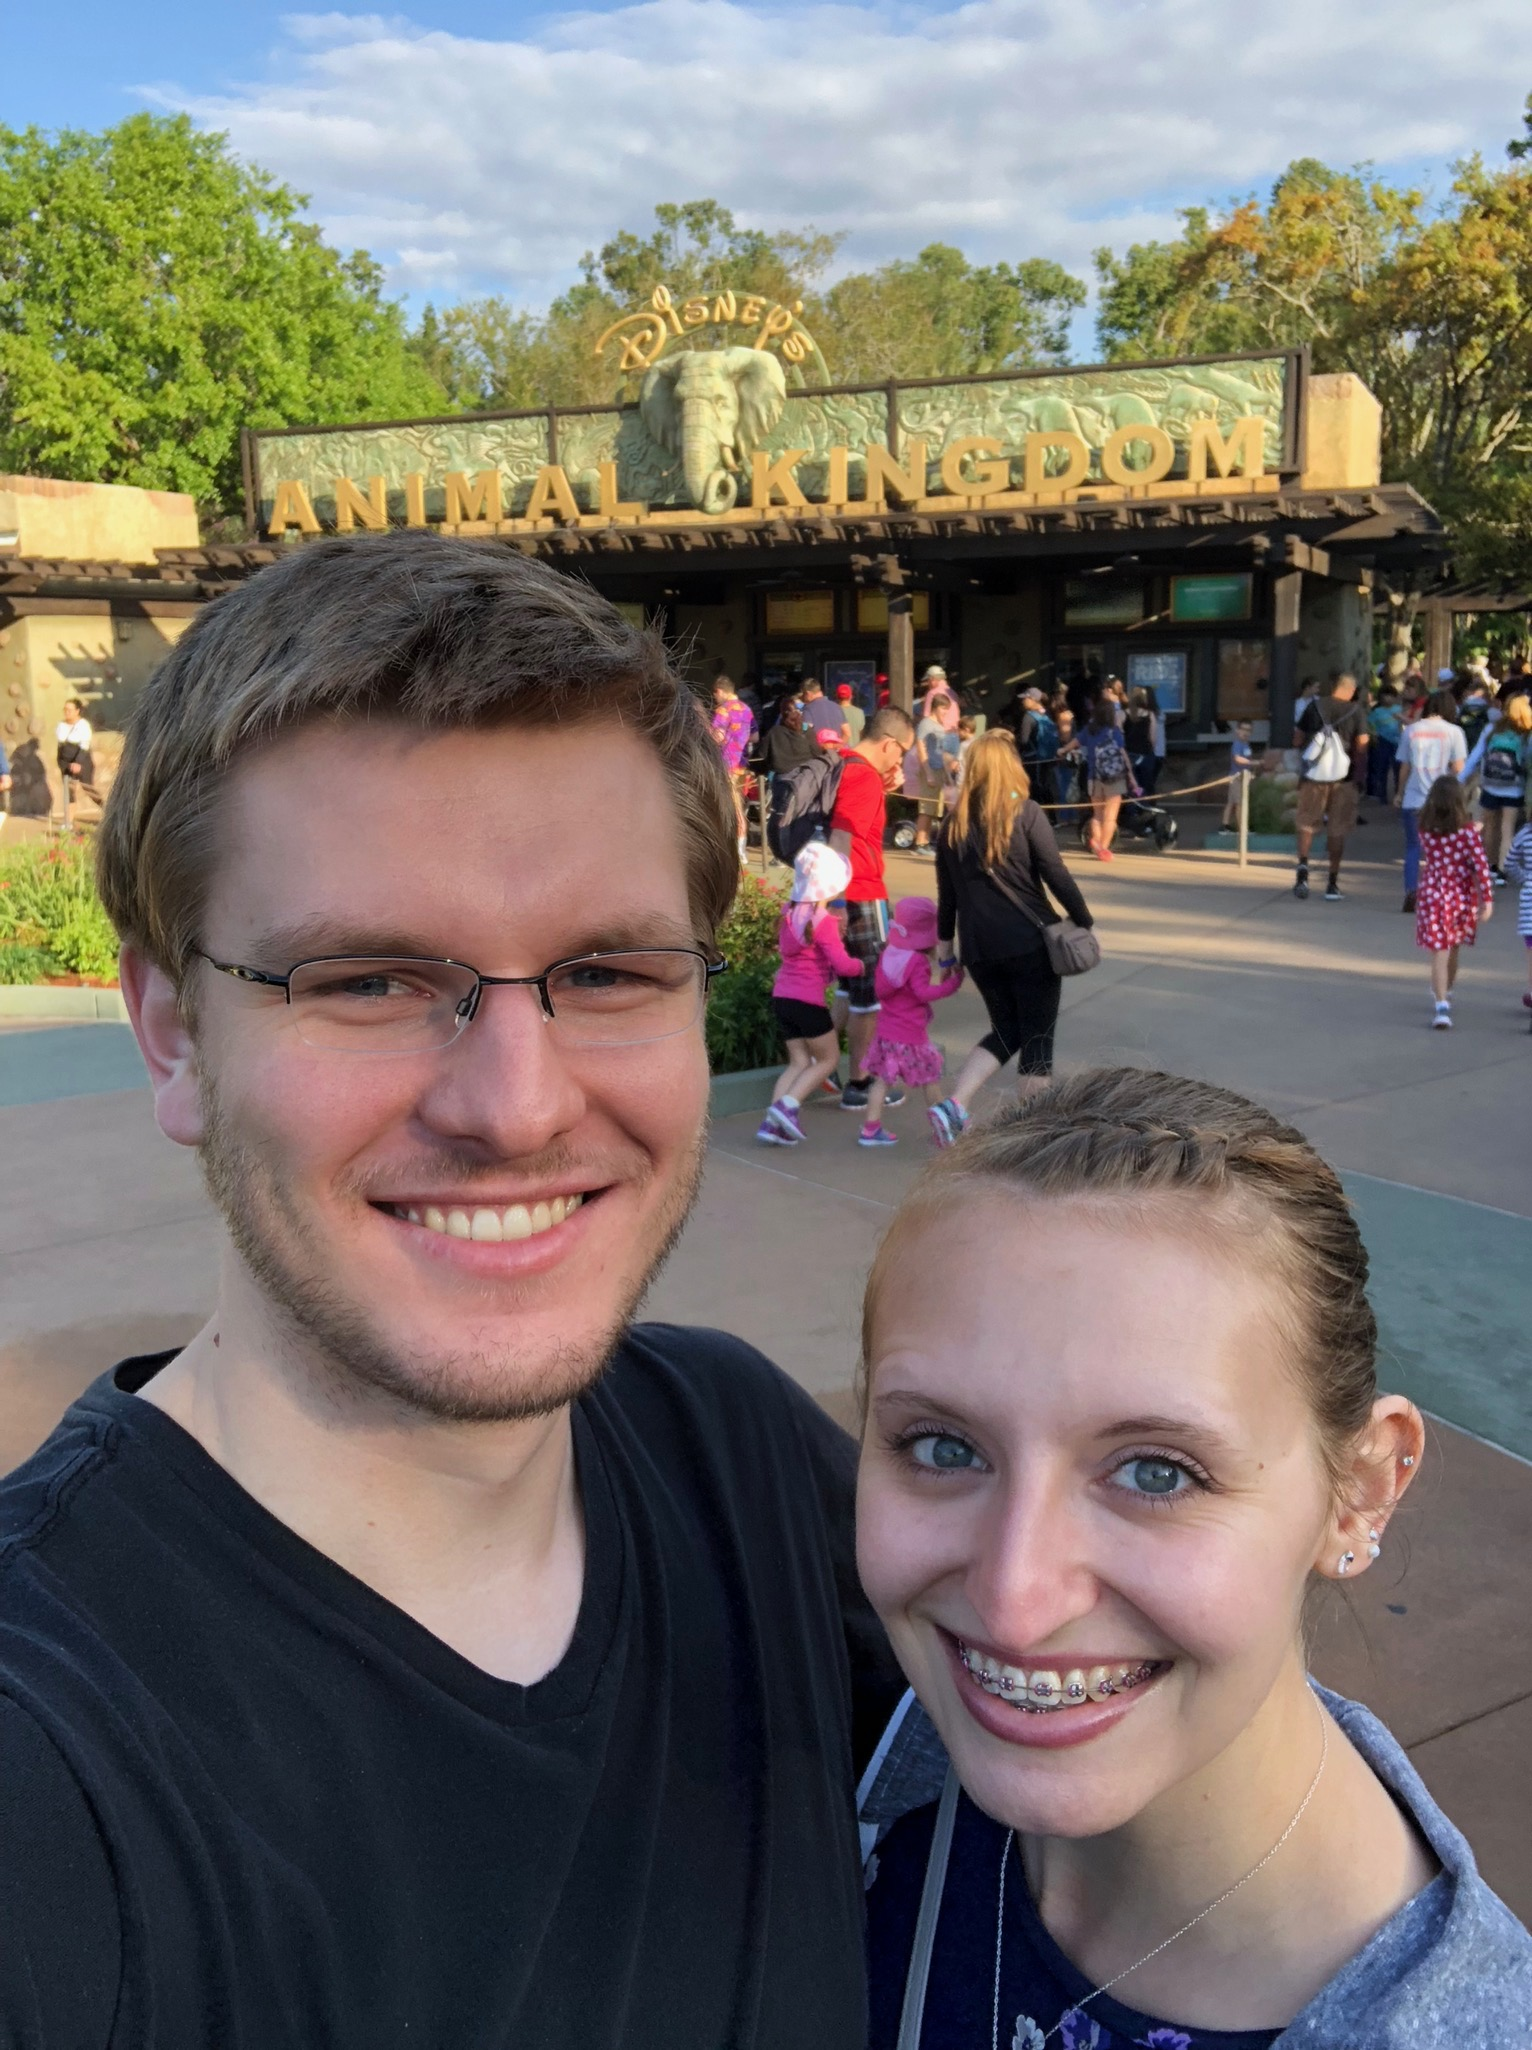 Animal Kingdom was, well, a zoo. But the Avatar ride and Lion King show were pretty fun!